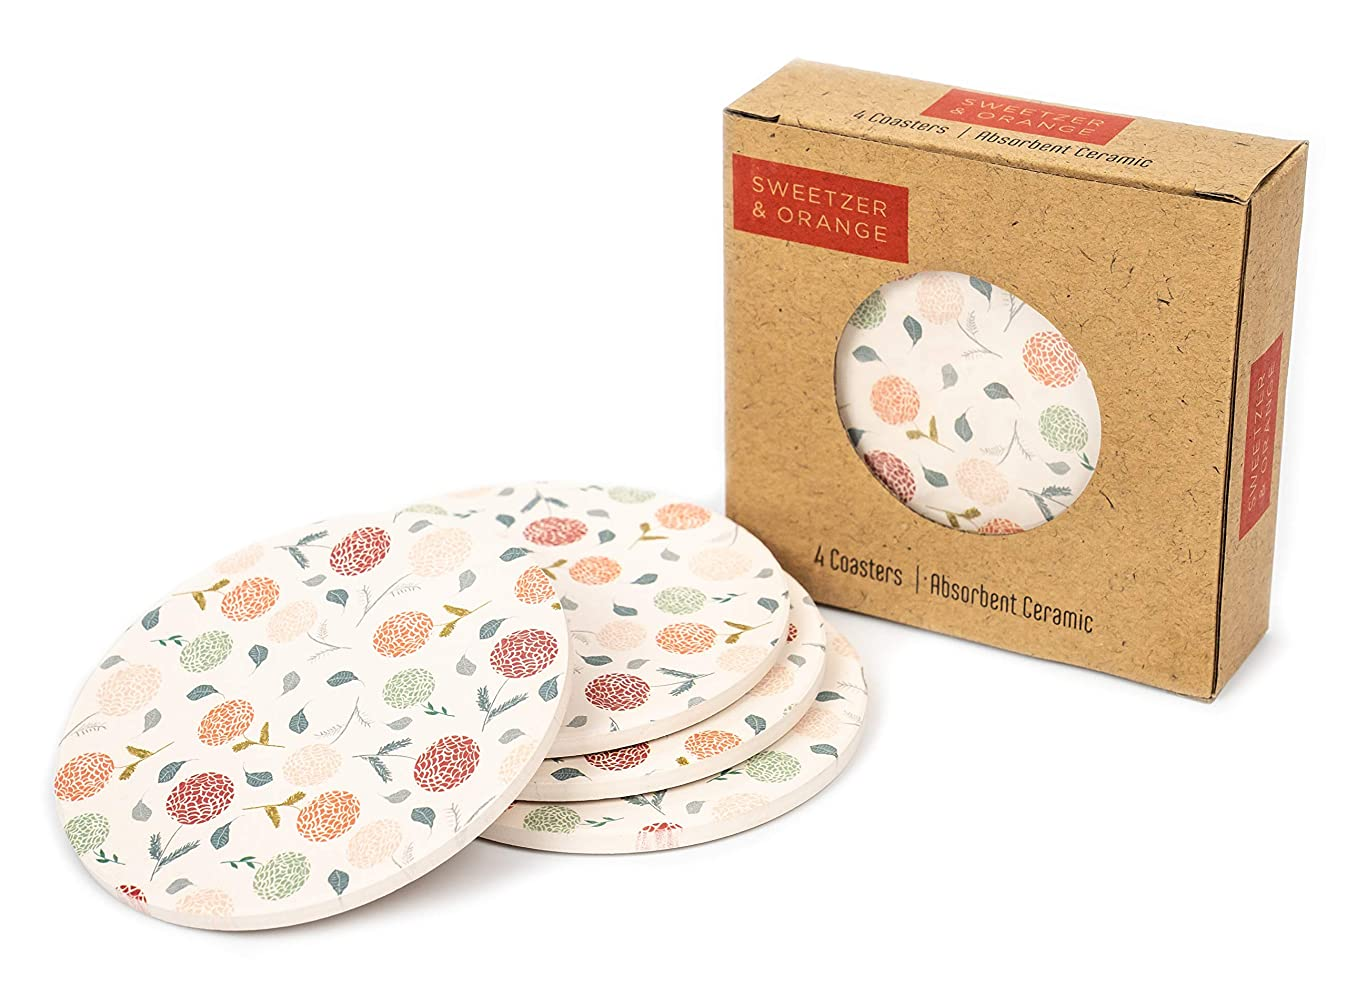 Ceramic Coasters for Drinks by Sweetzer & Orange - Cream Floral Drink Coasters, Round 4 Piece Coaster Set with Absorbent Ceramic Stone and Cork Base - Absorbant For Table, Desk and Bar